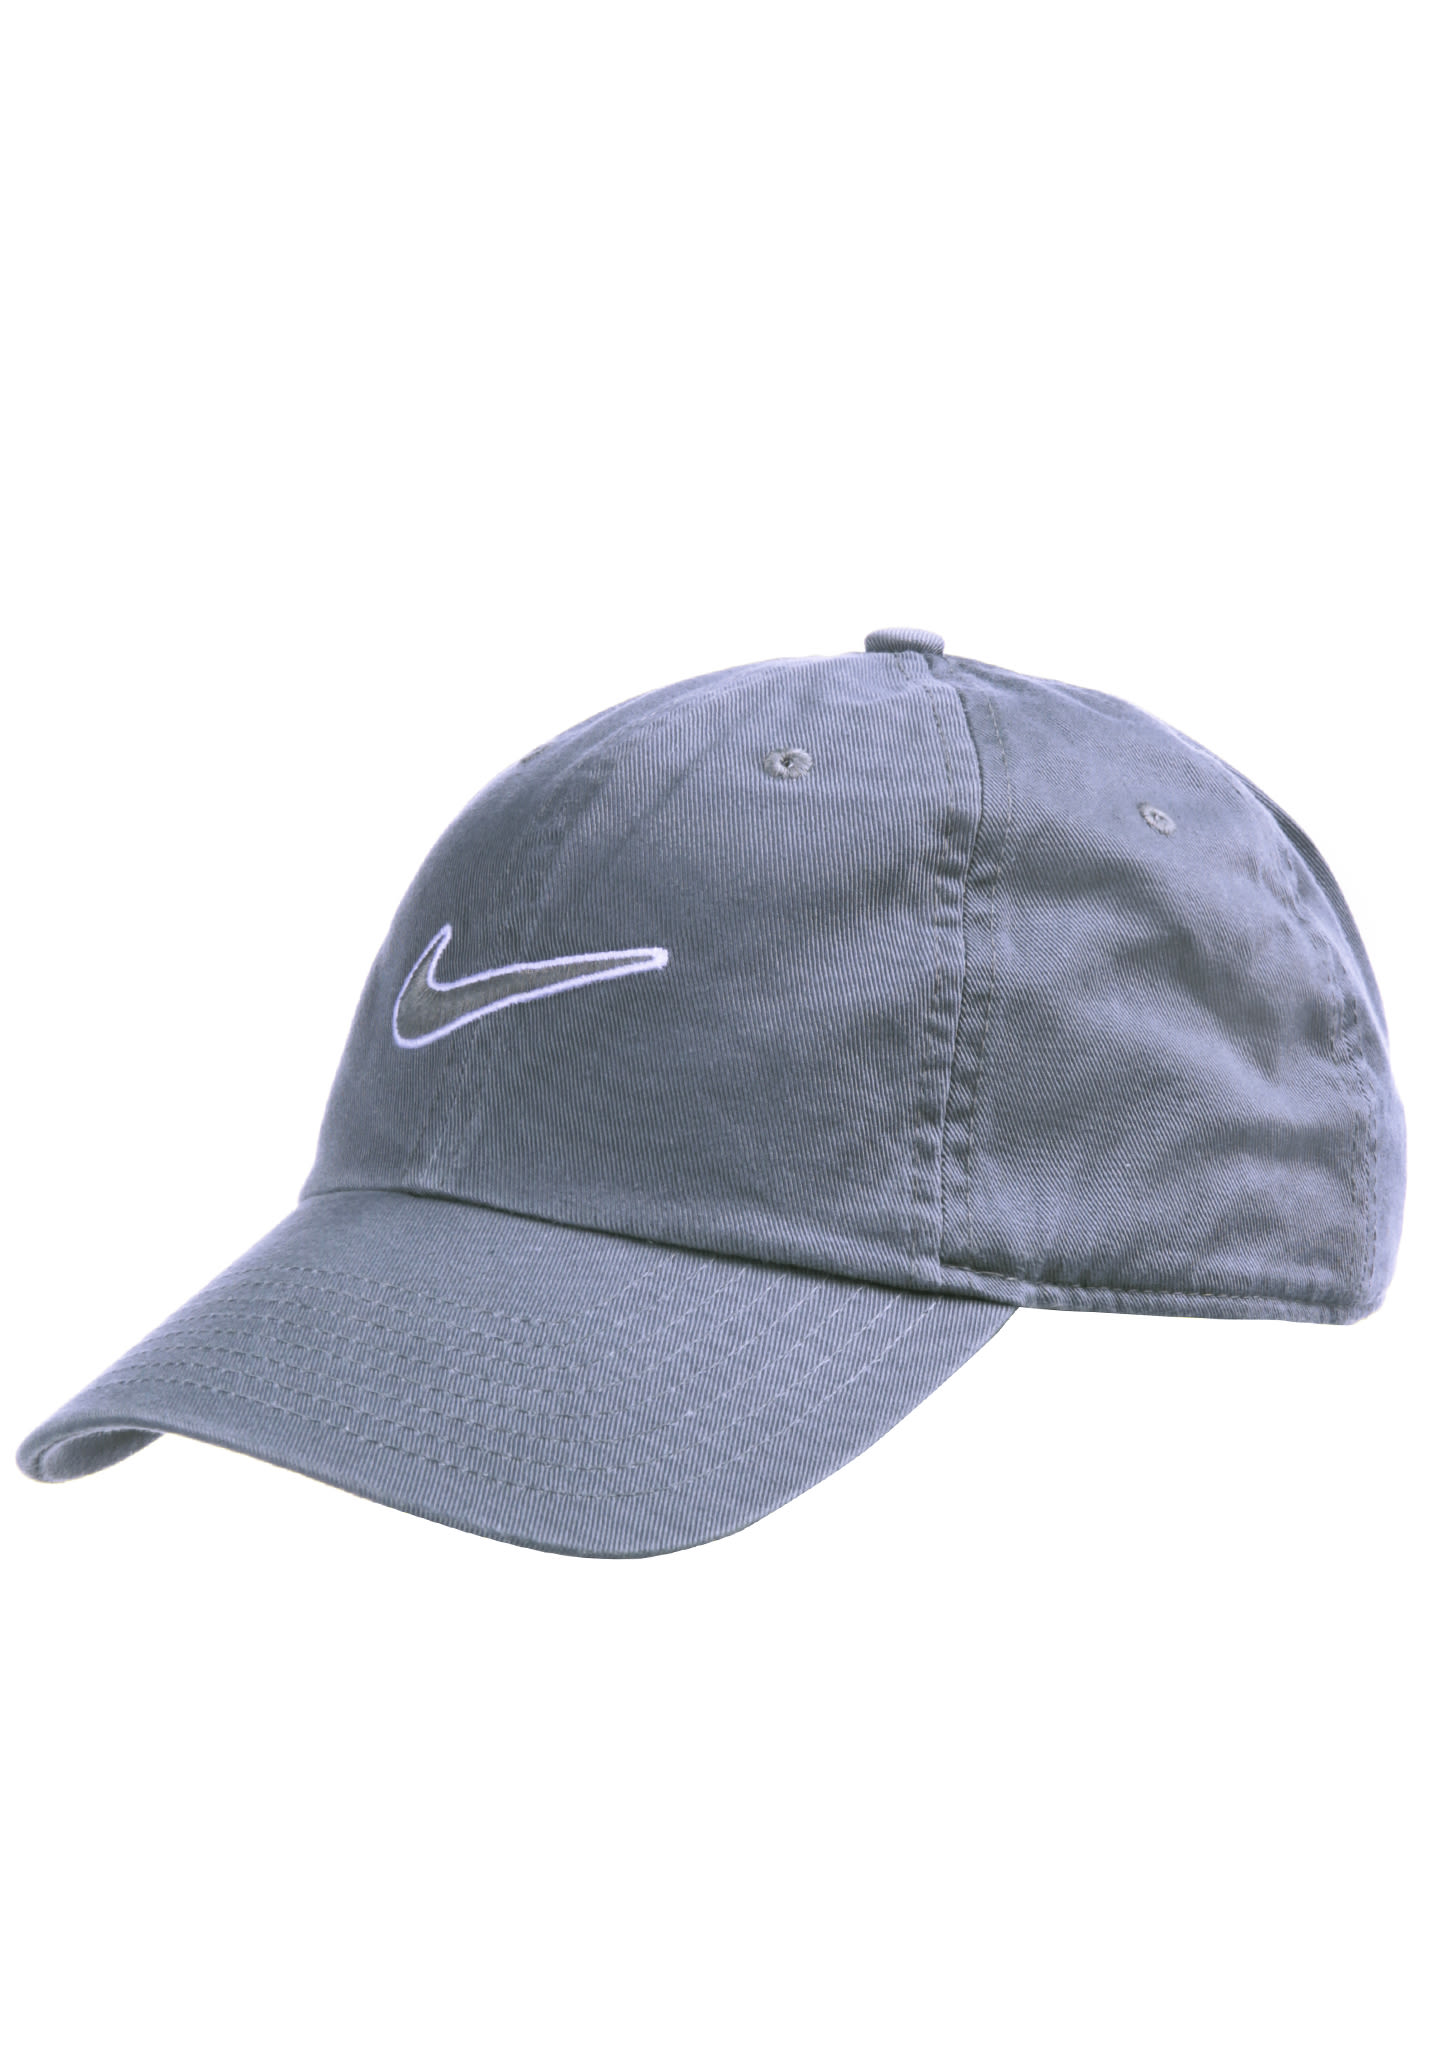 6adfb839cfa1d NIKE SPORTSWEAR Essentials Heritage86 - Cap - Grey - Planet Sports